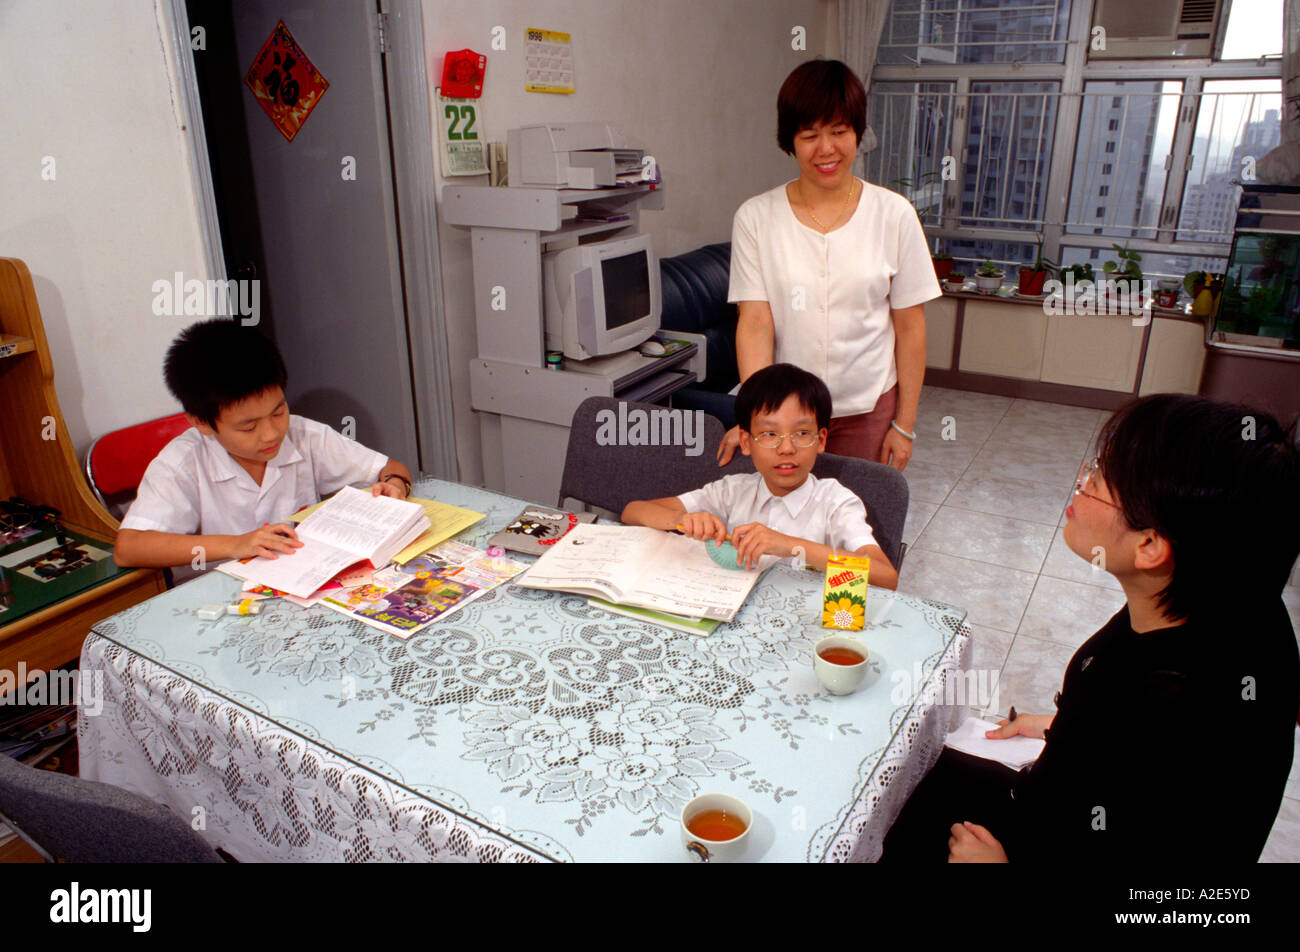 A Chinese Immigrant Family Living - 182.8KB